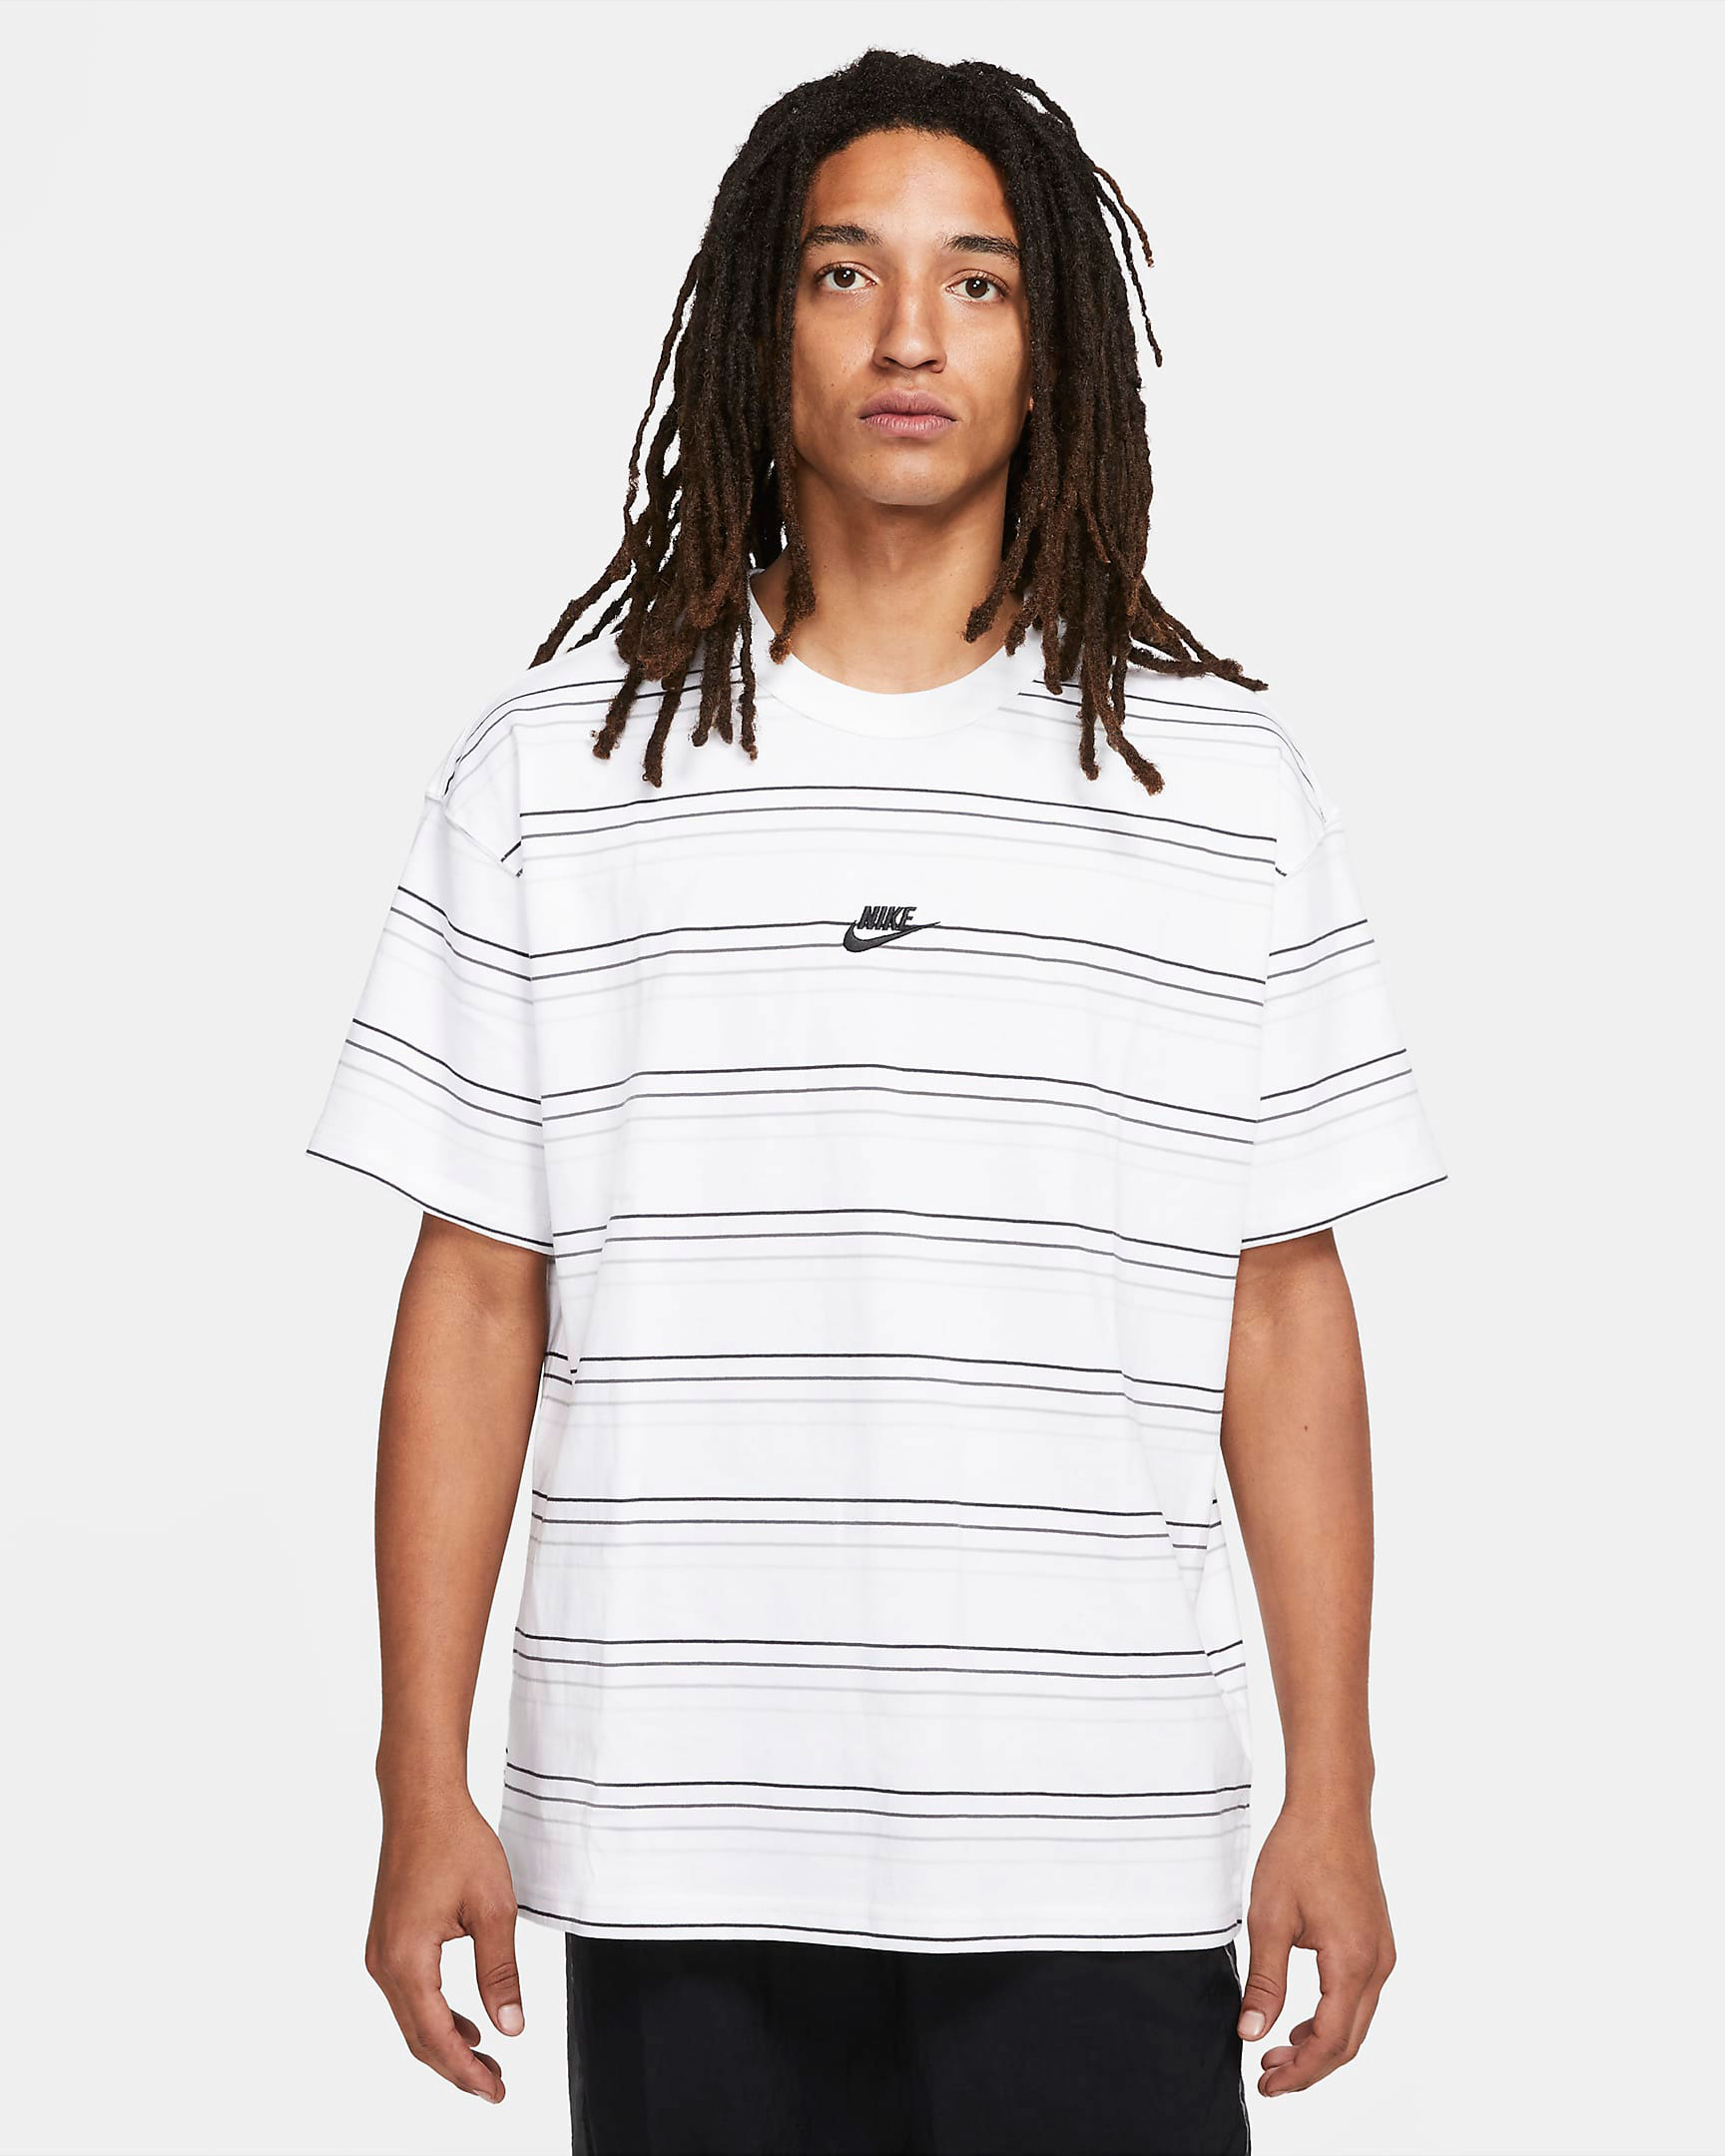 nike-dunk-low-white-black-tee-shirt-1